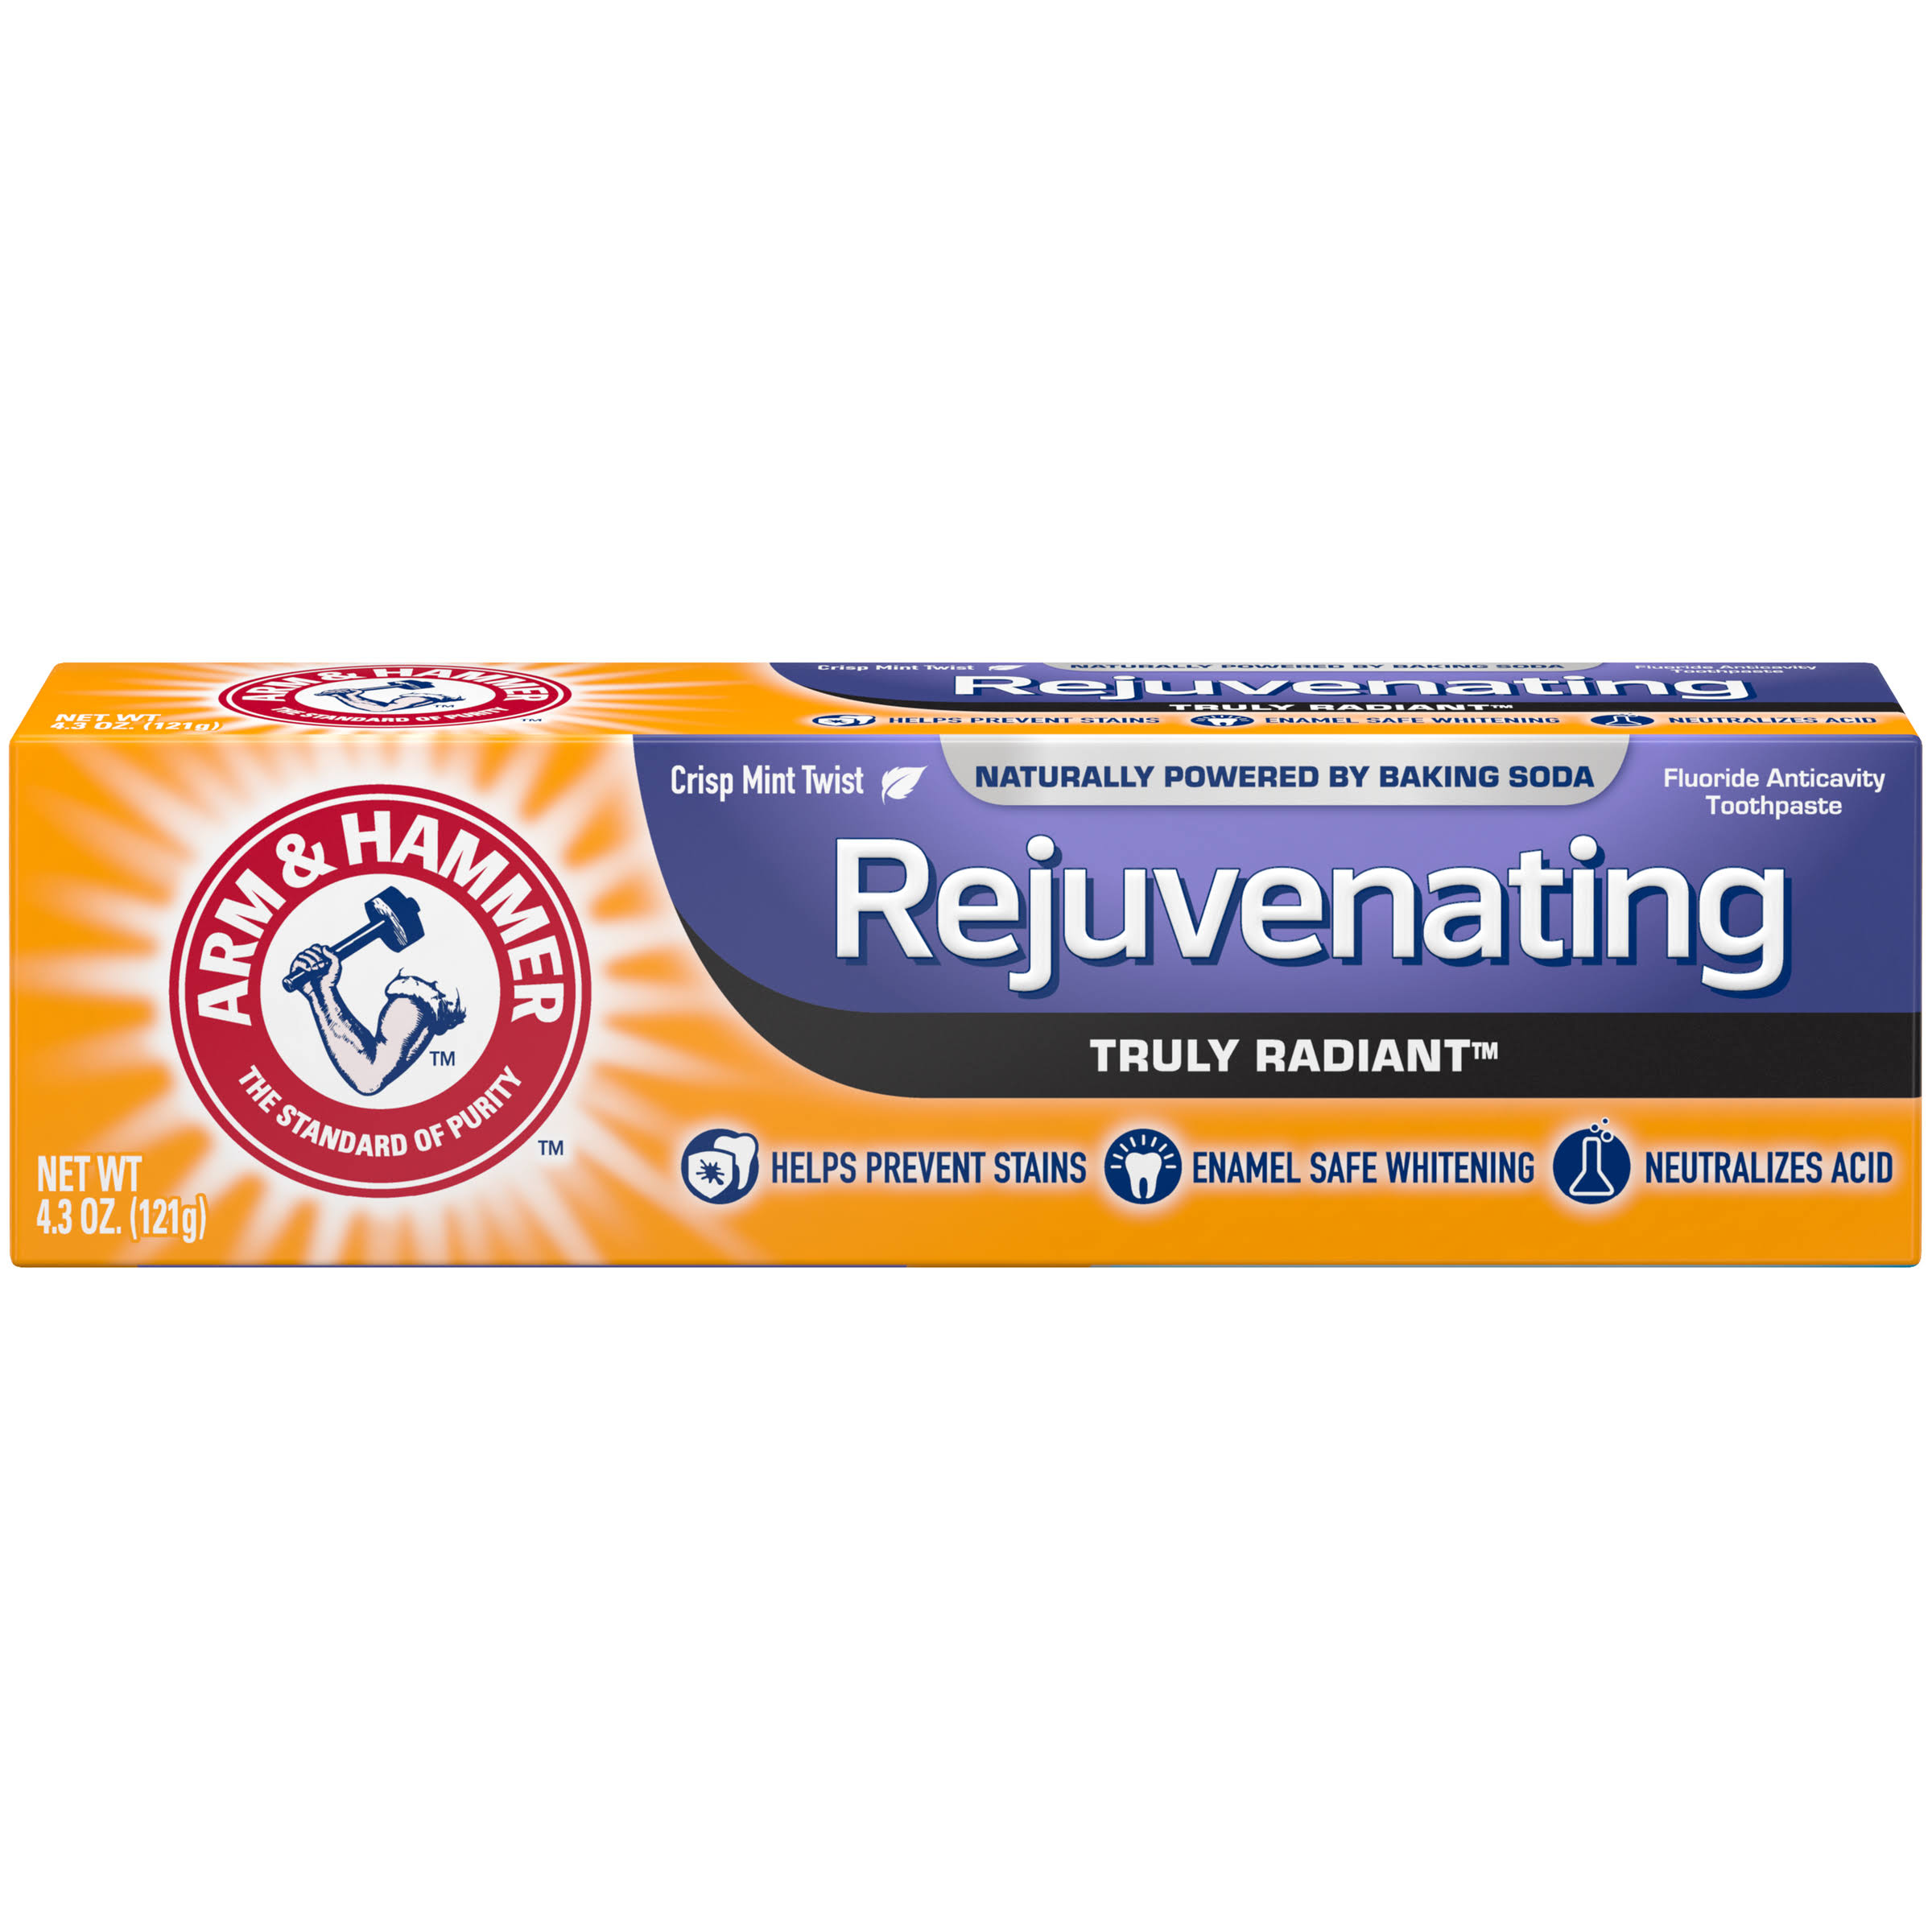 Arm & Hammer Truly Radiant Toothpaste - Fresh Mint, 121g